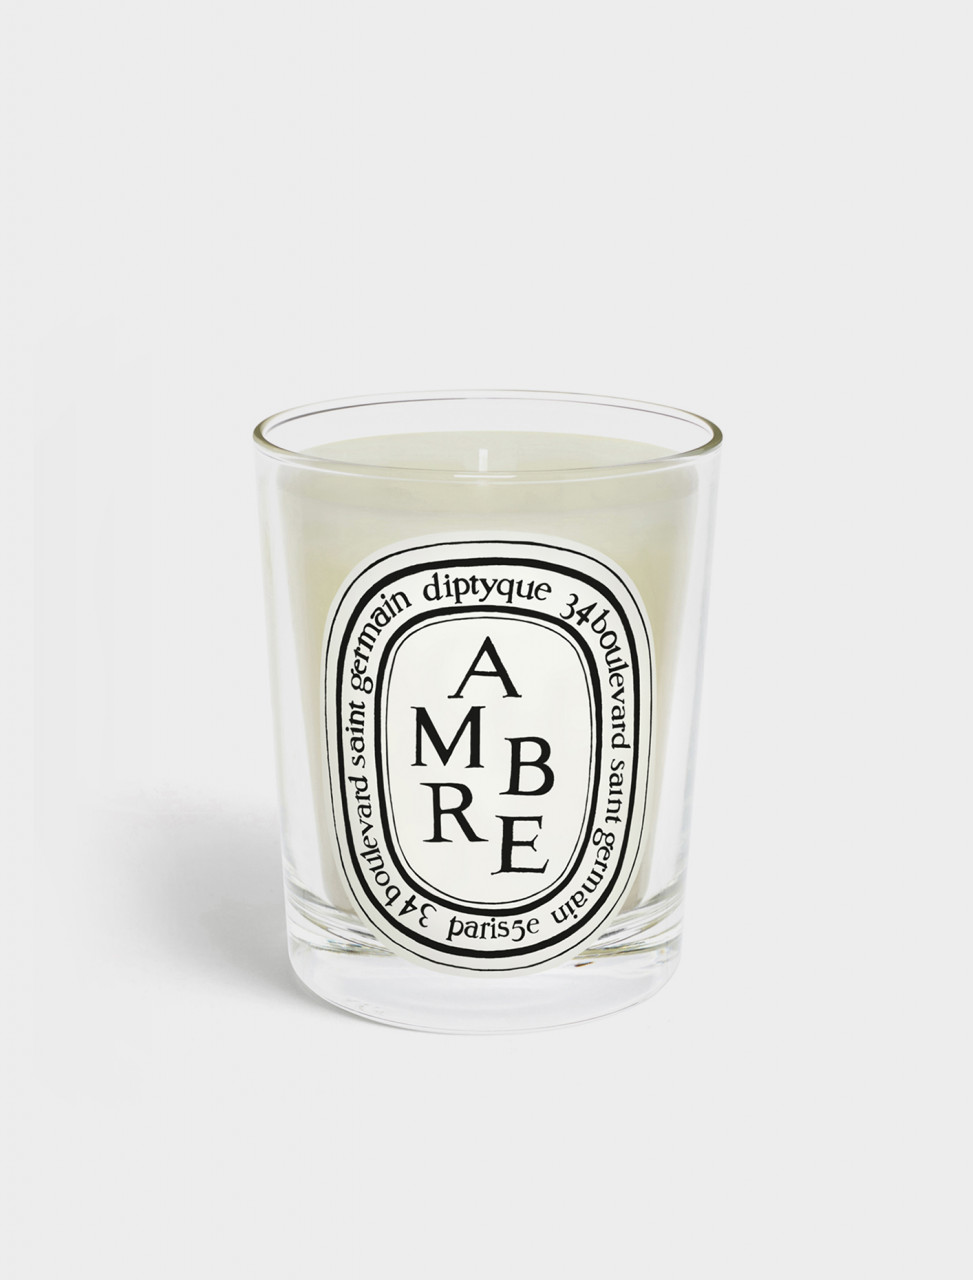 337-AB DIPTYQUE AMBER STANDARD CANDLE